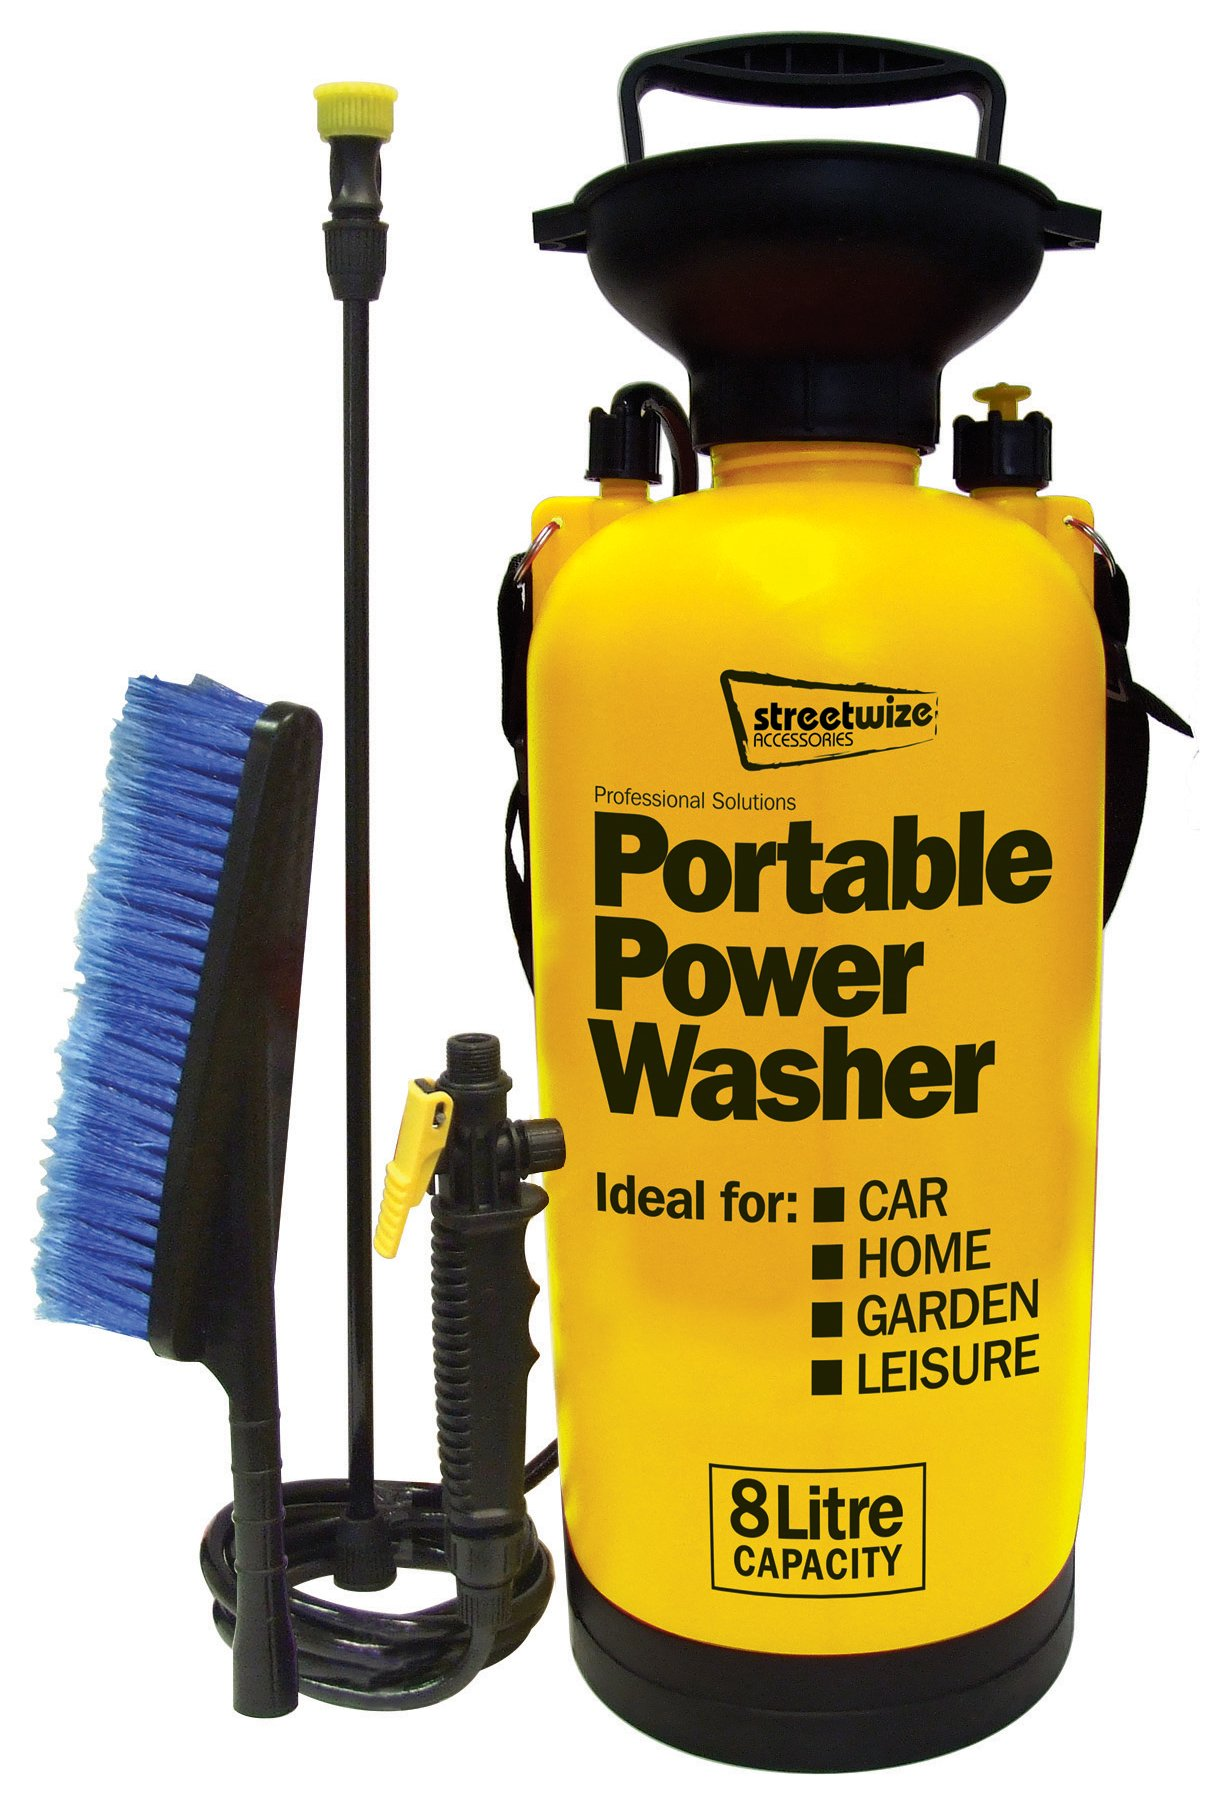 Streetwize Portable Power Washer - 8 Litre.